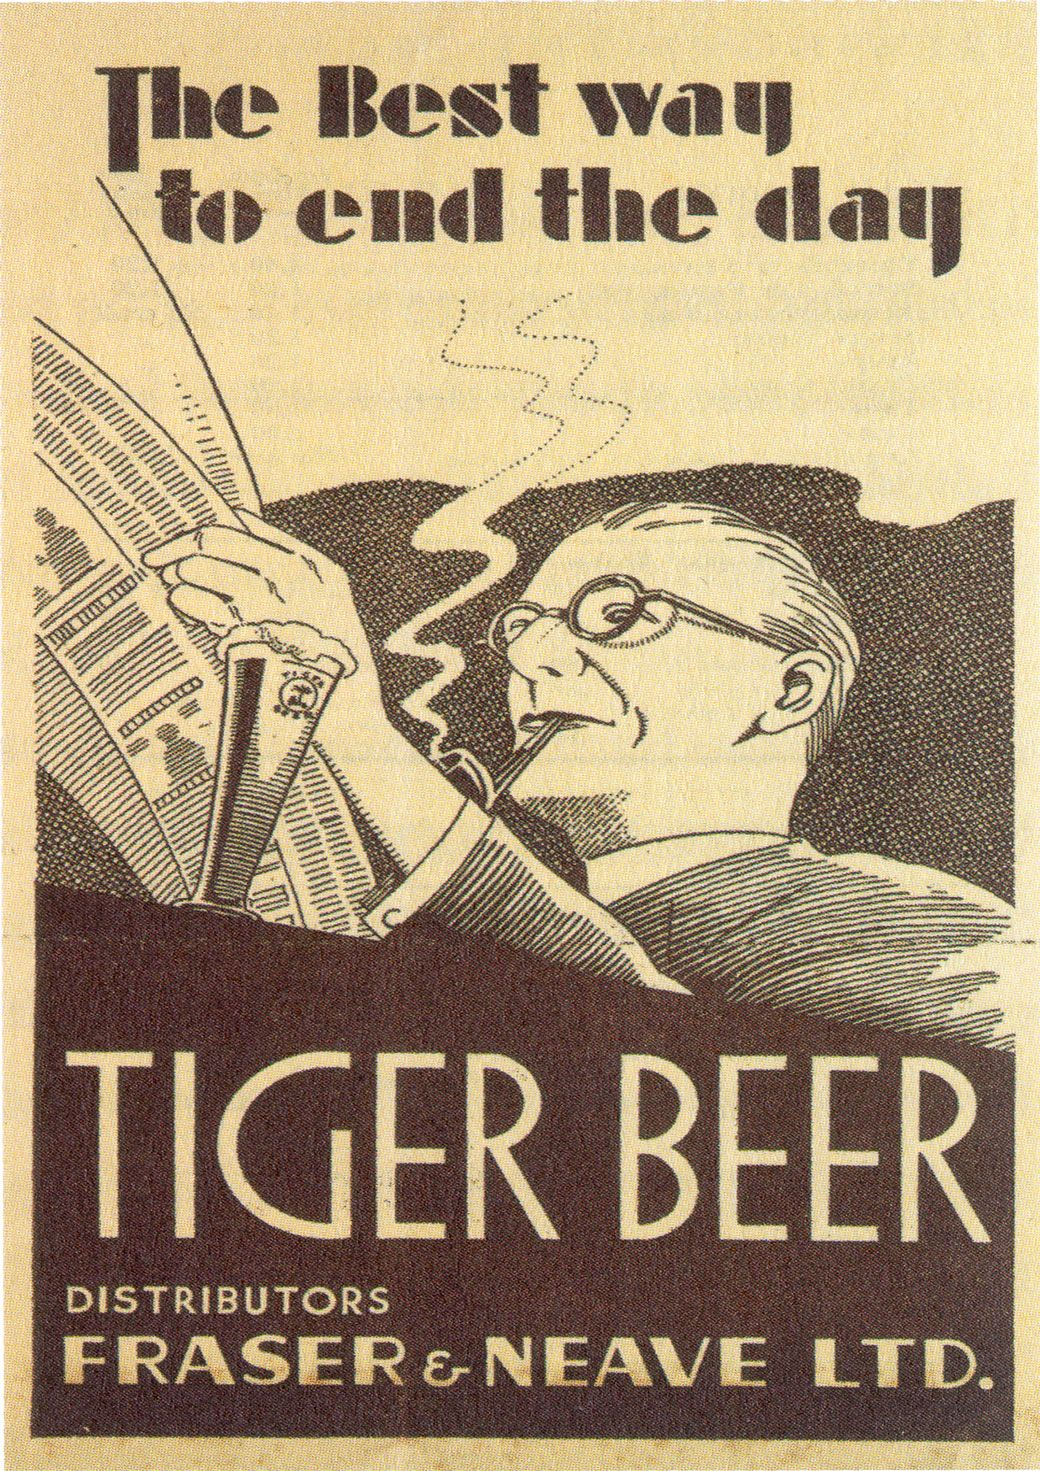 Tiger Beer Ad, 1930s